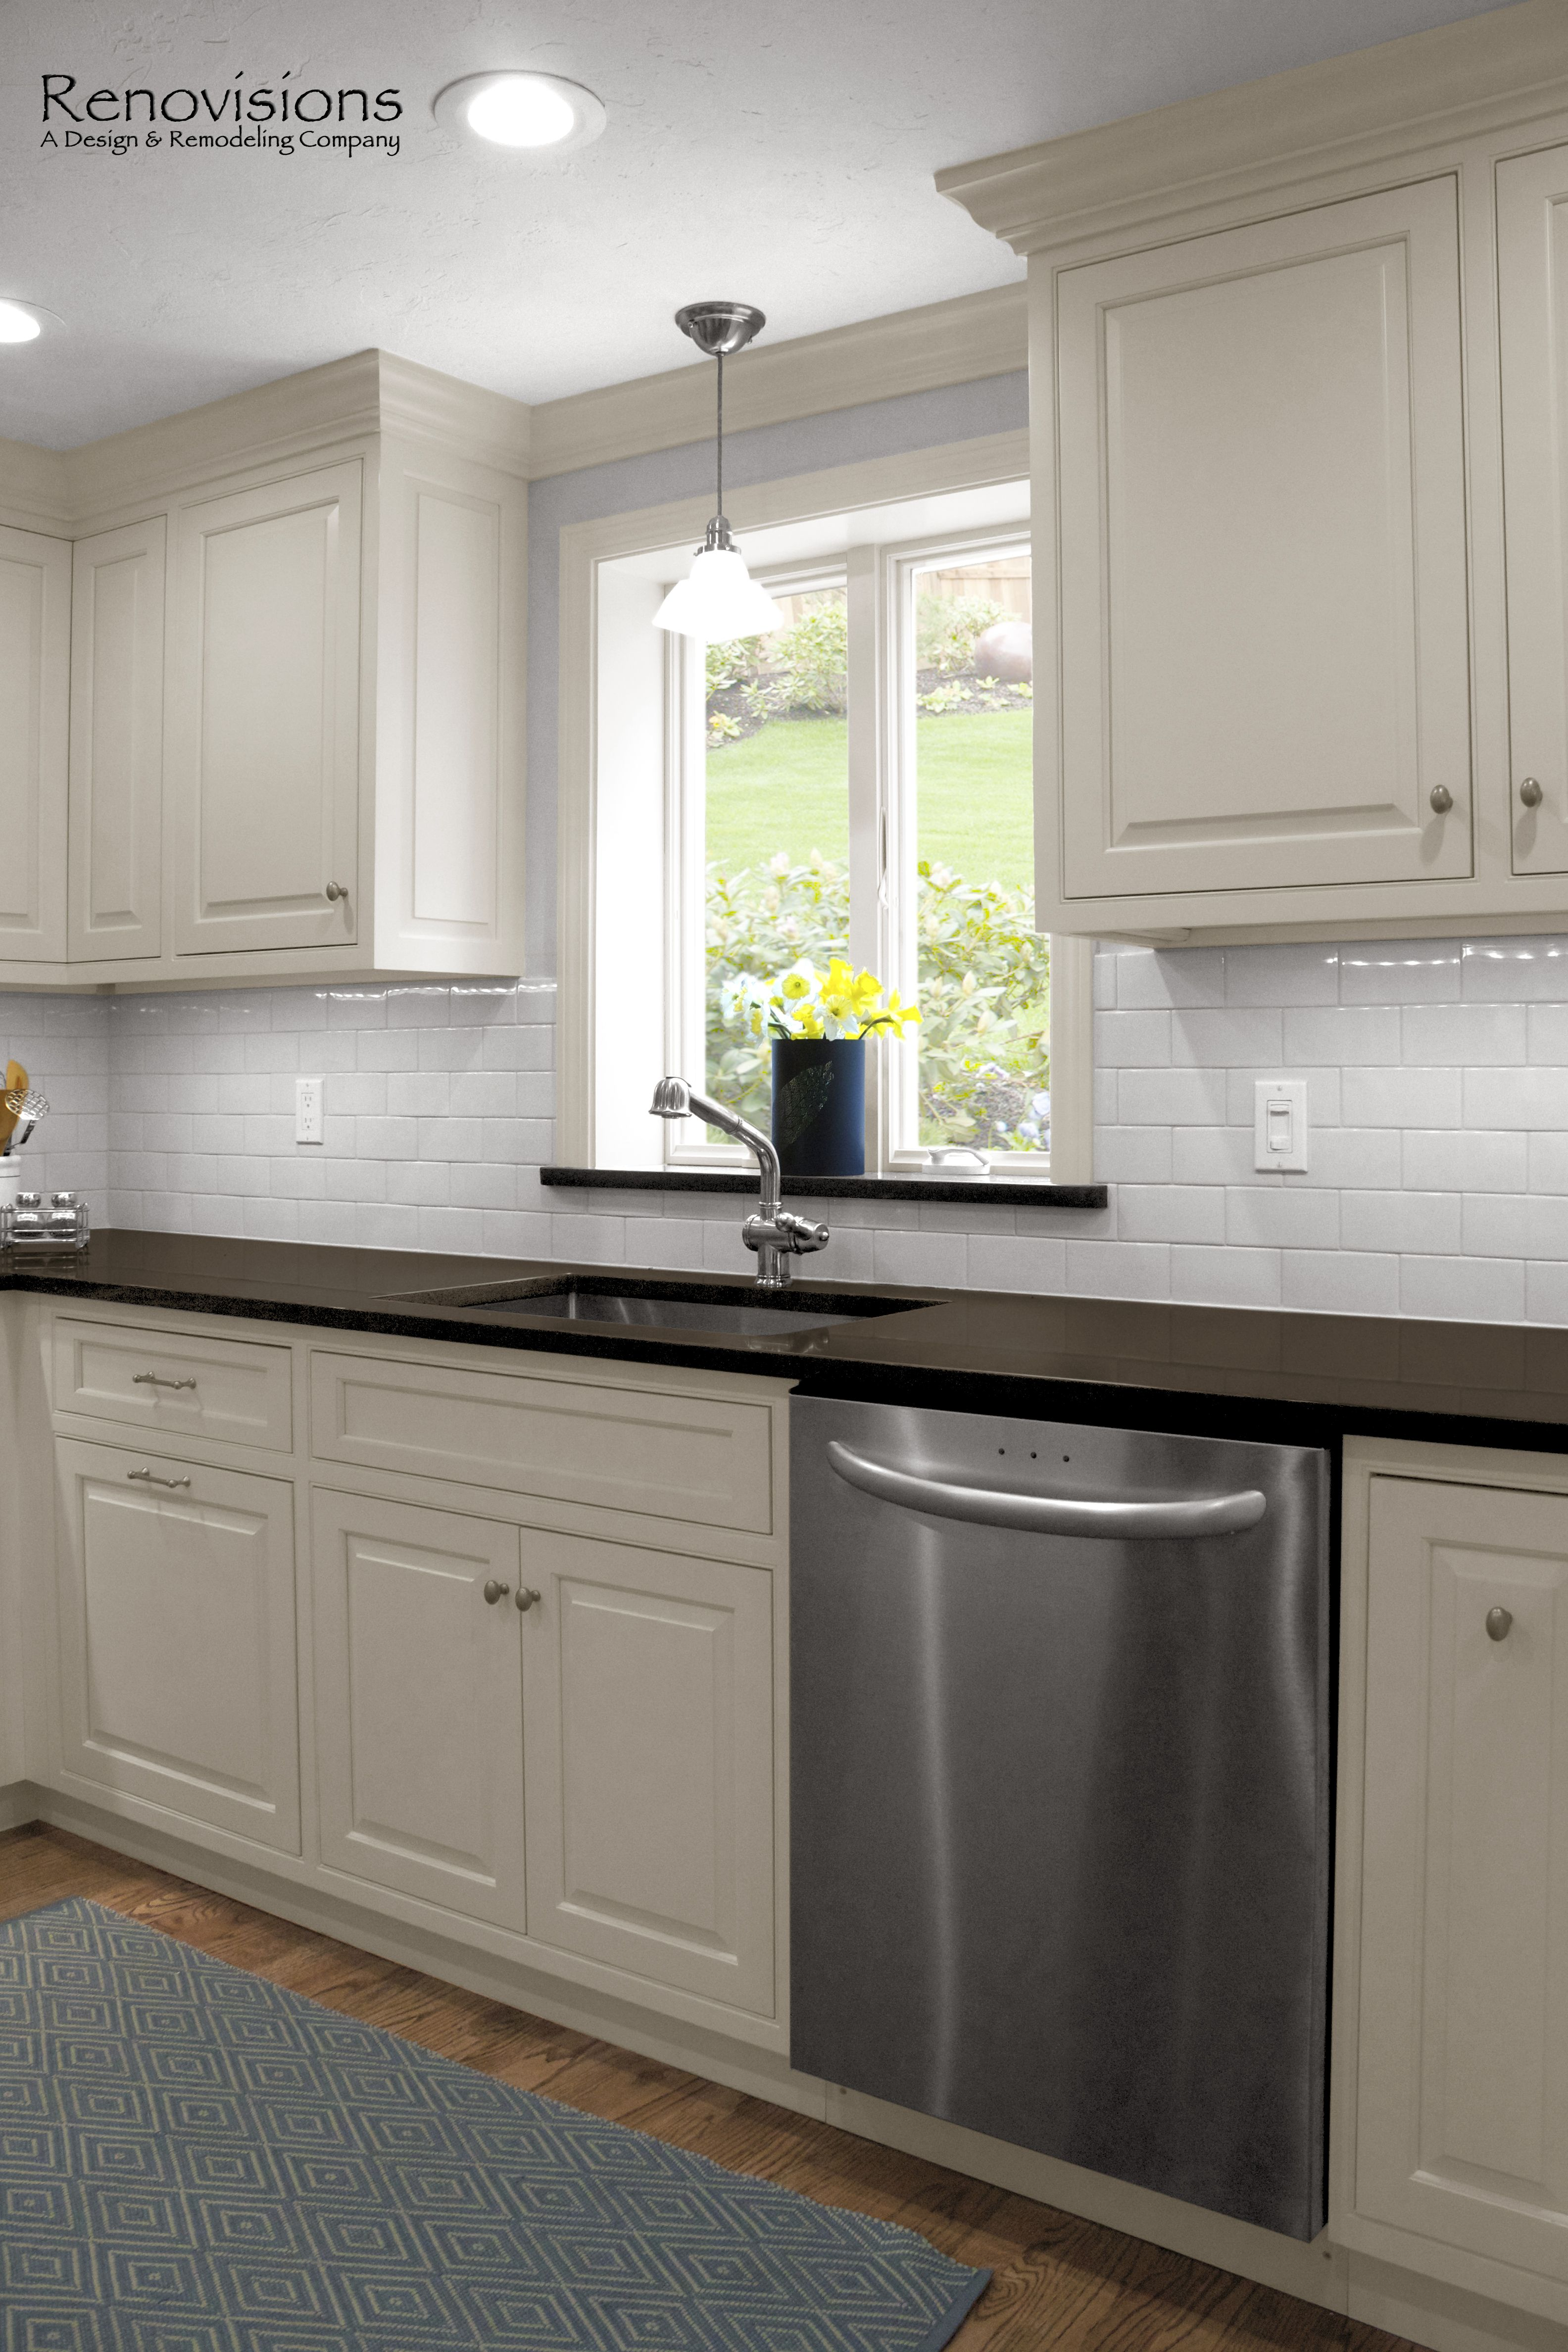 Kitchen Remodel By Renovisions Custom Painted White Inset Cabinets Functional Storage Task L Tall Kitchen Cabinets Kitchen Cabinet Design Kitchen Unit Doors